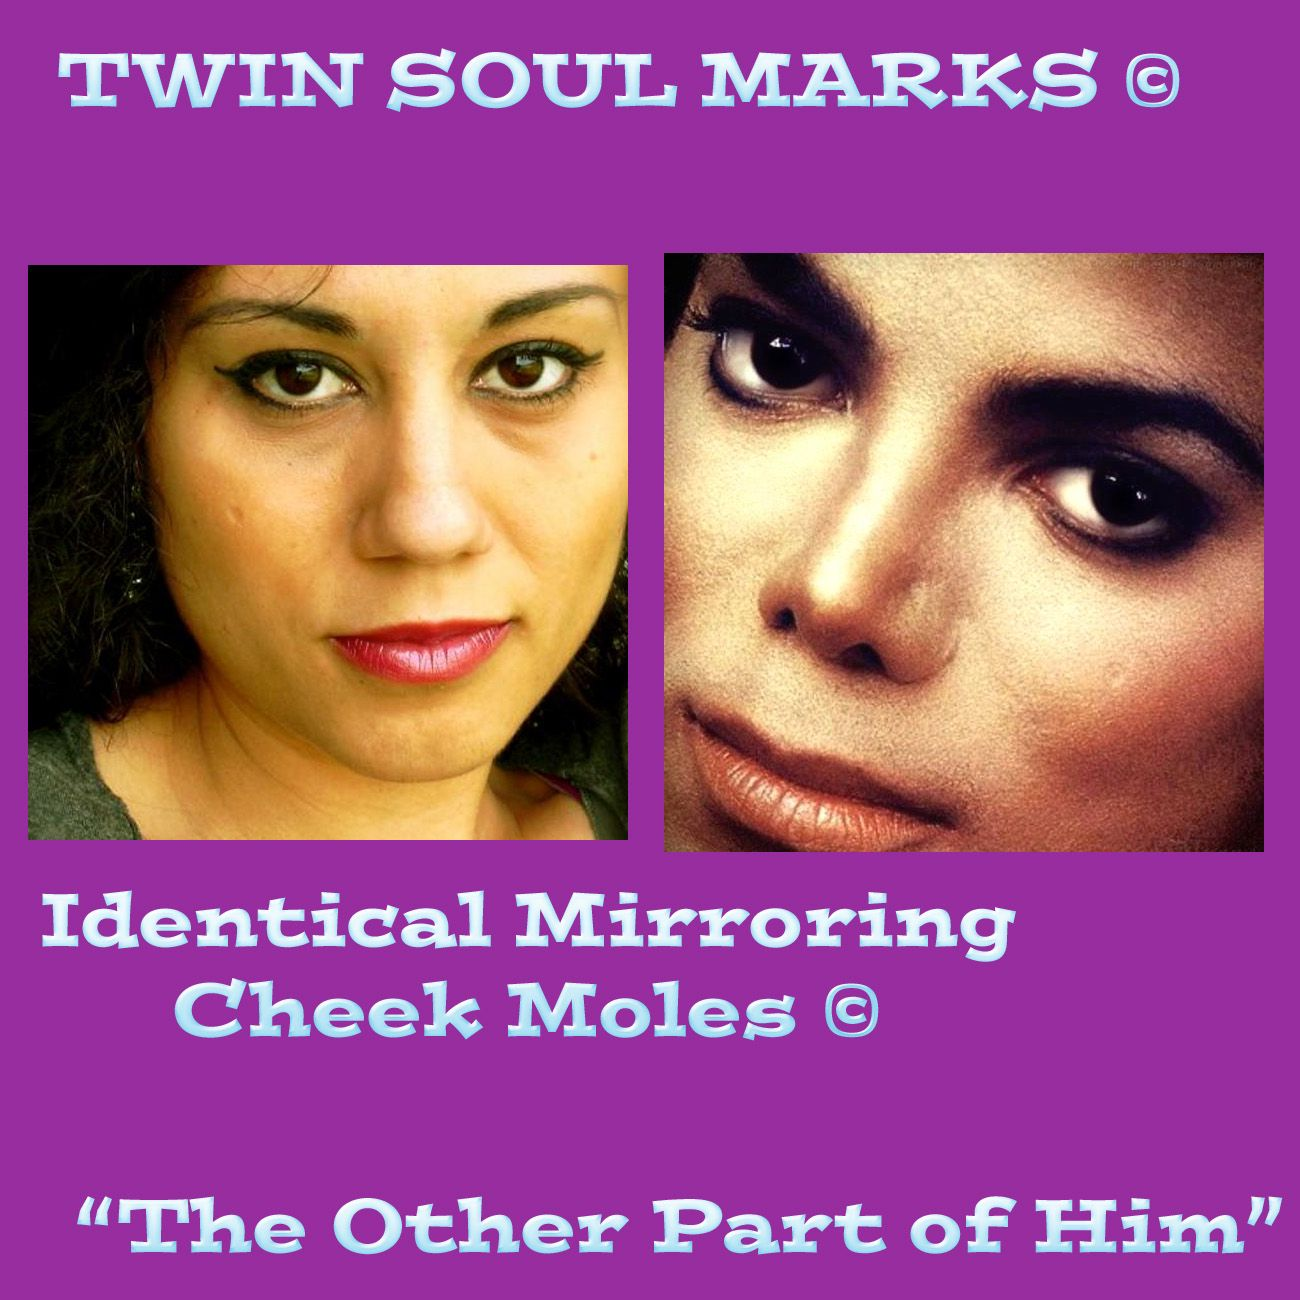 The Other Half of Me- Physically manifested Mirror of Twin